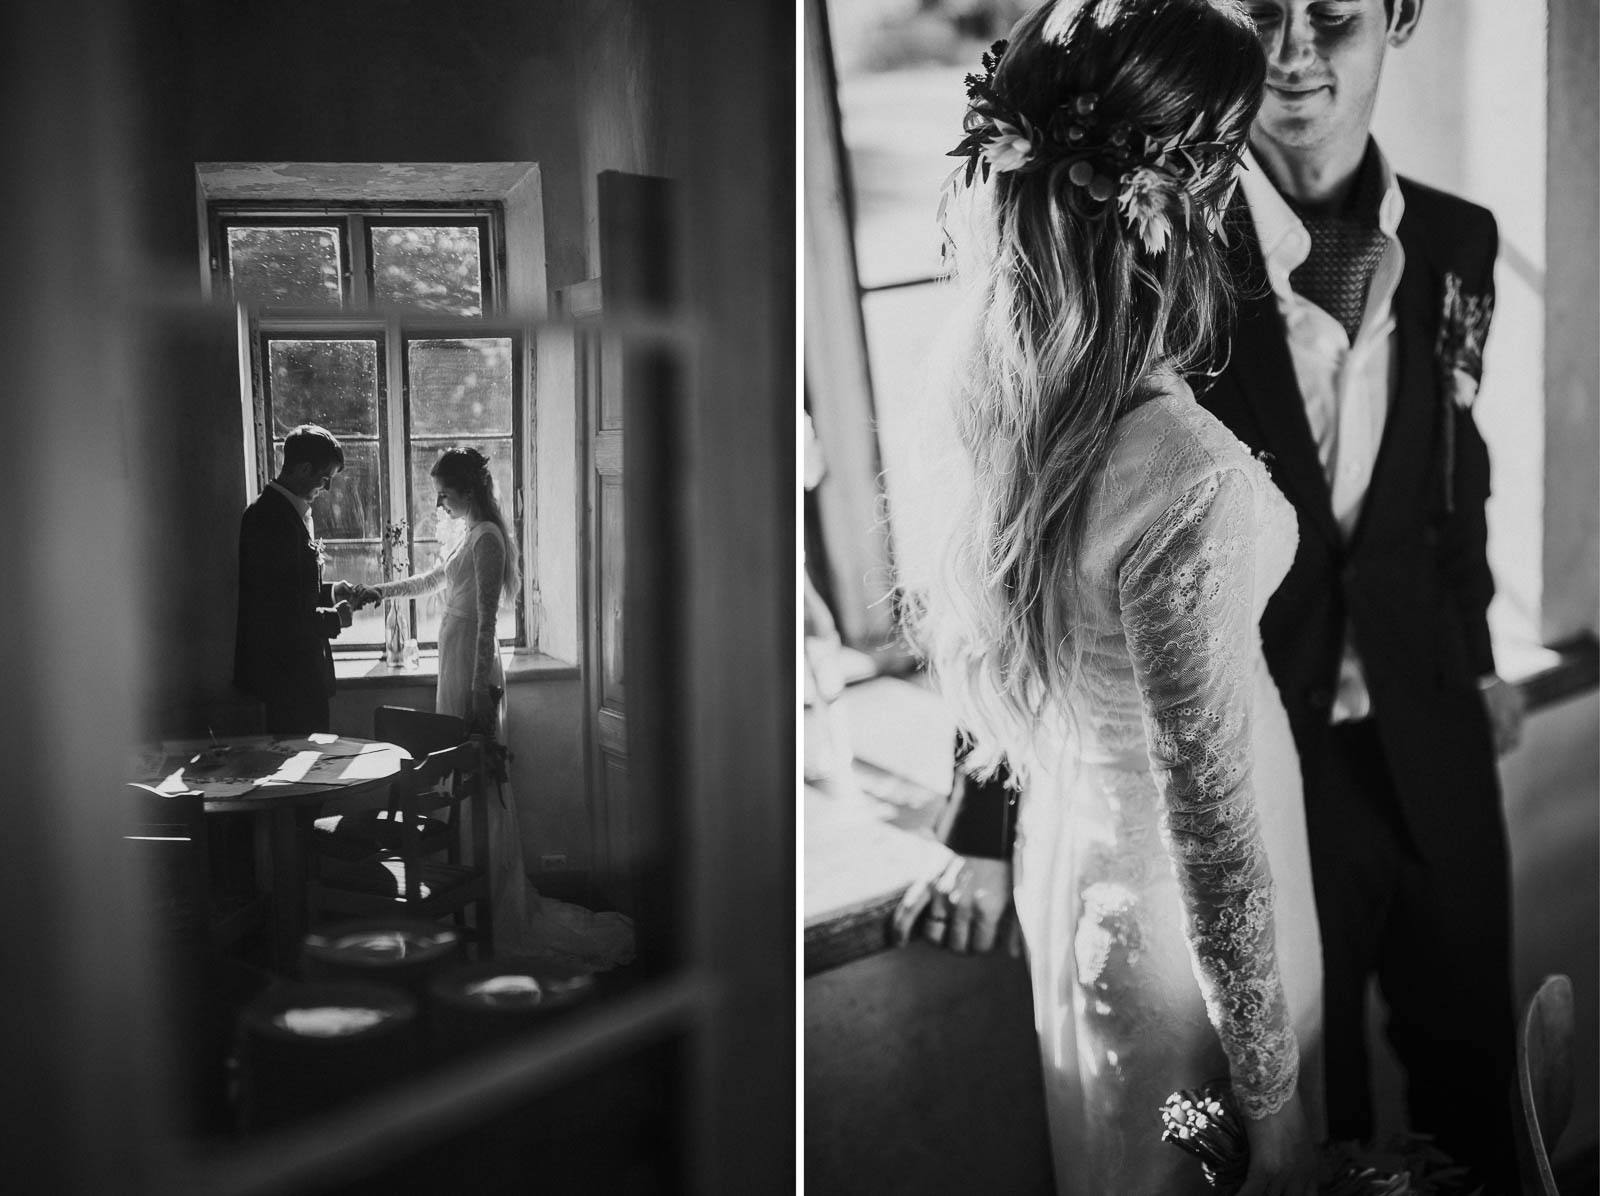 Pohjaka_mois_manor_pulm_wedding_Mait_Juriado-11